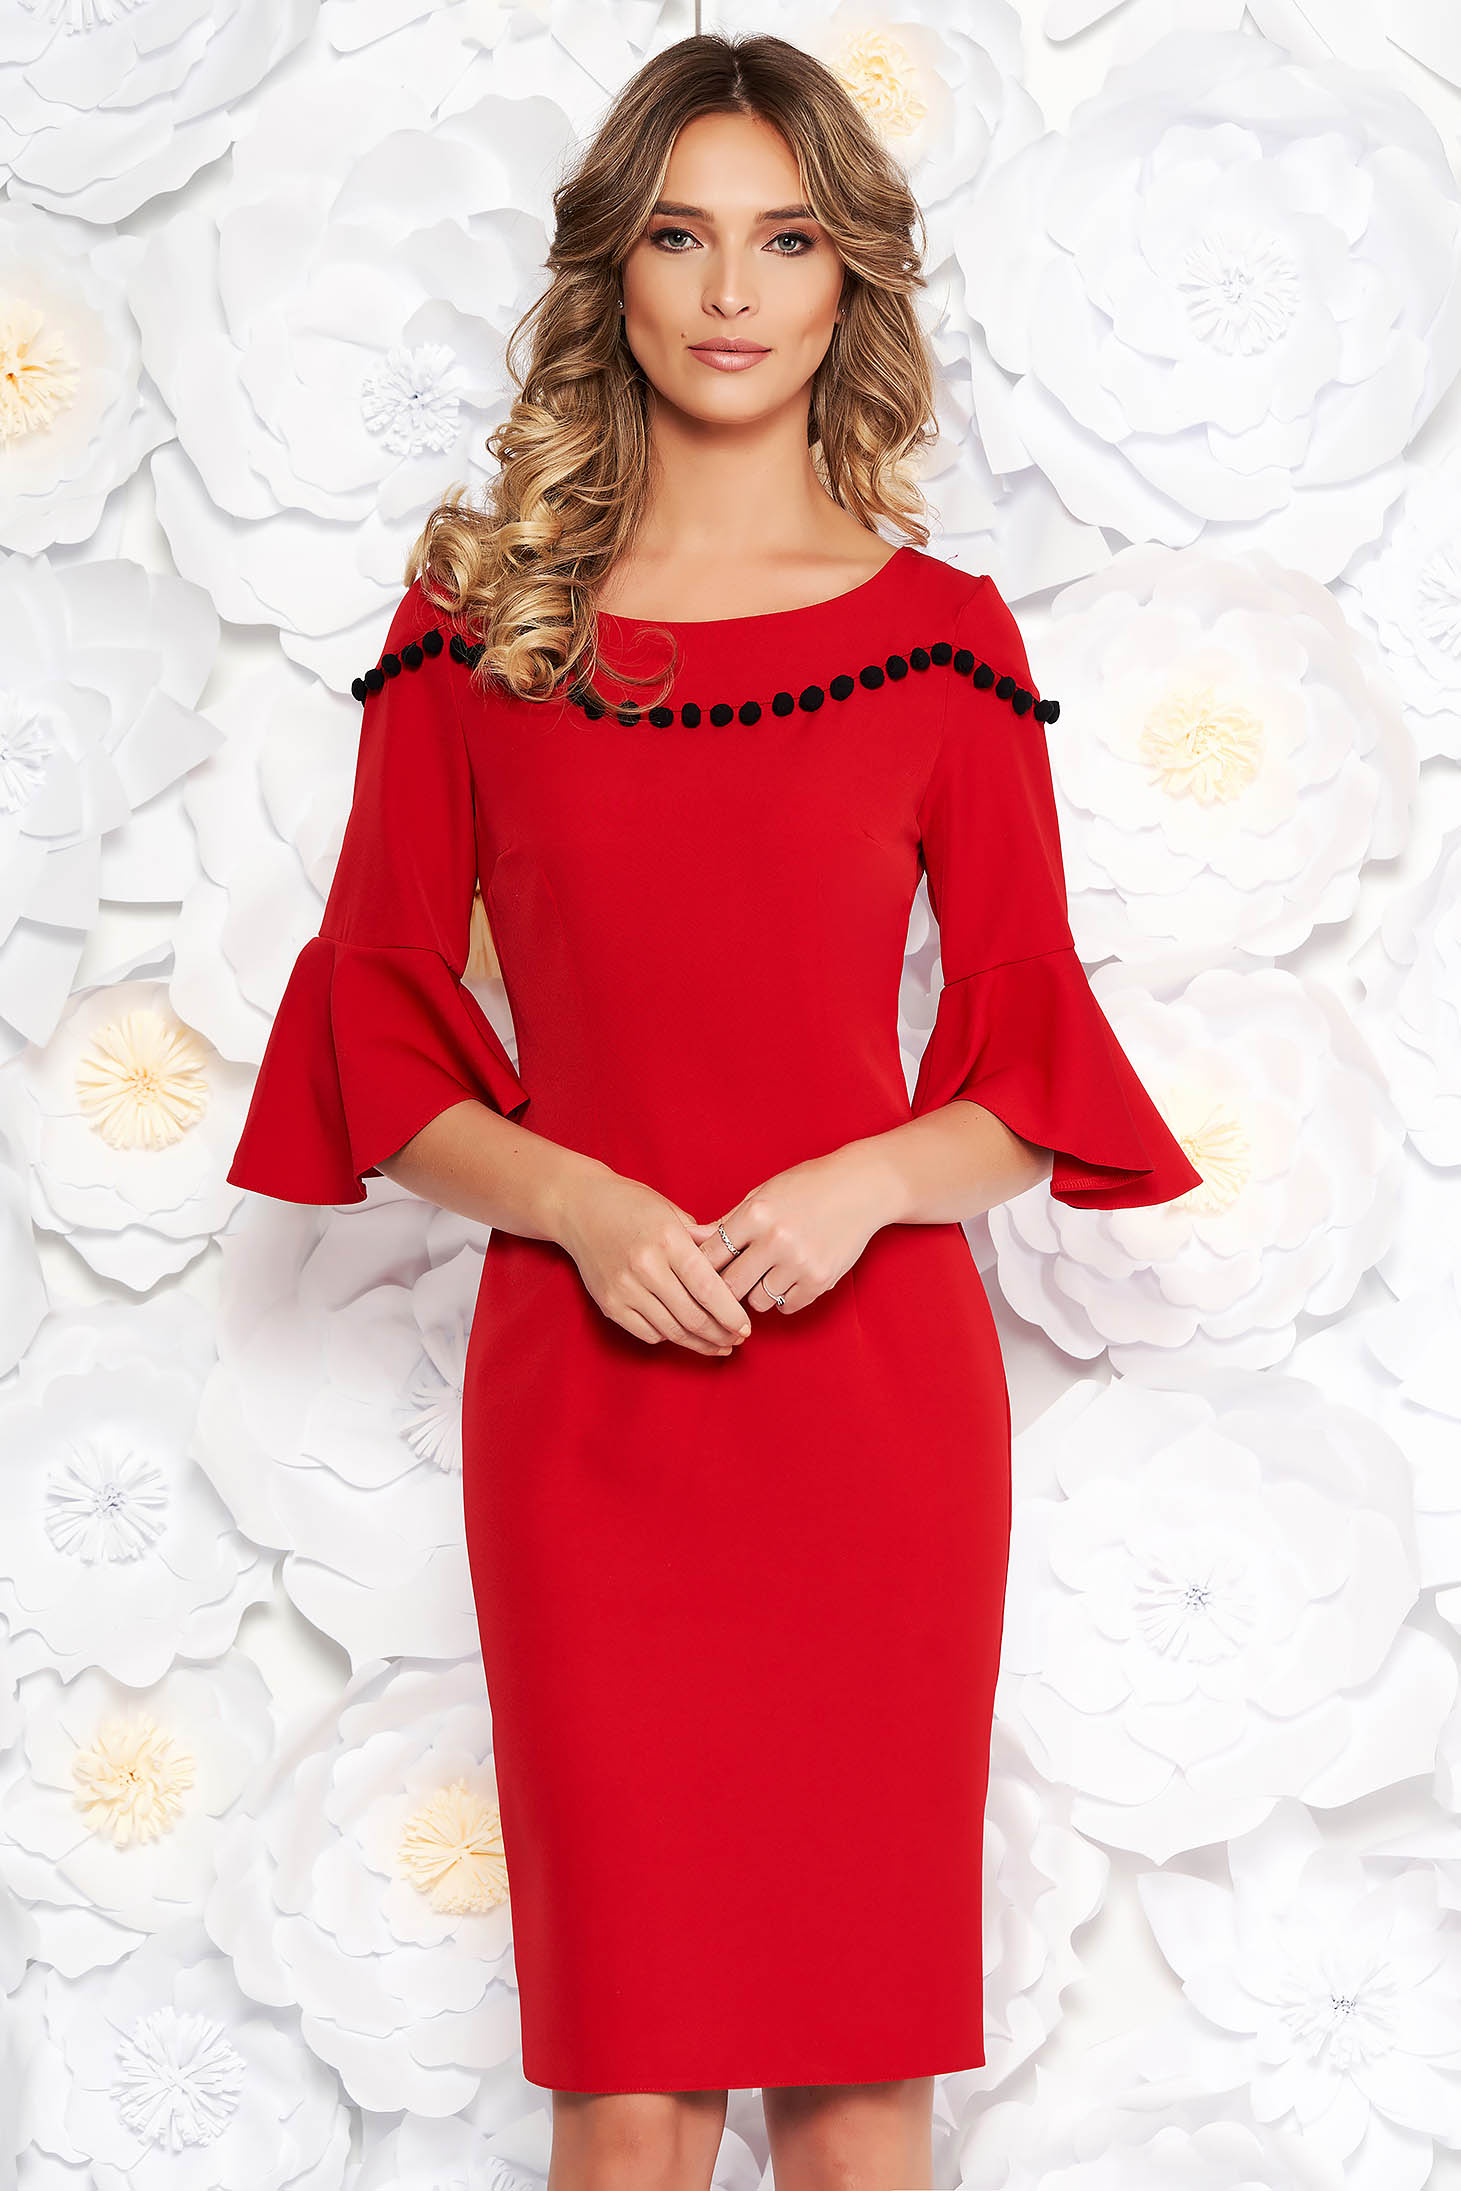 Red elegant pencil dress soft fabric with bell sleeve with tassels